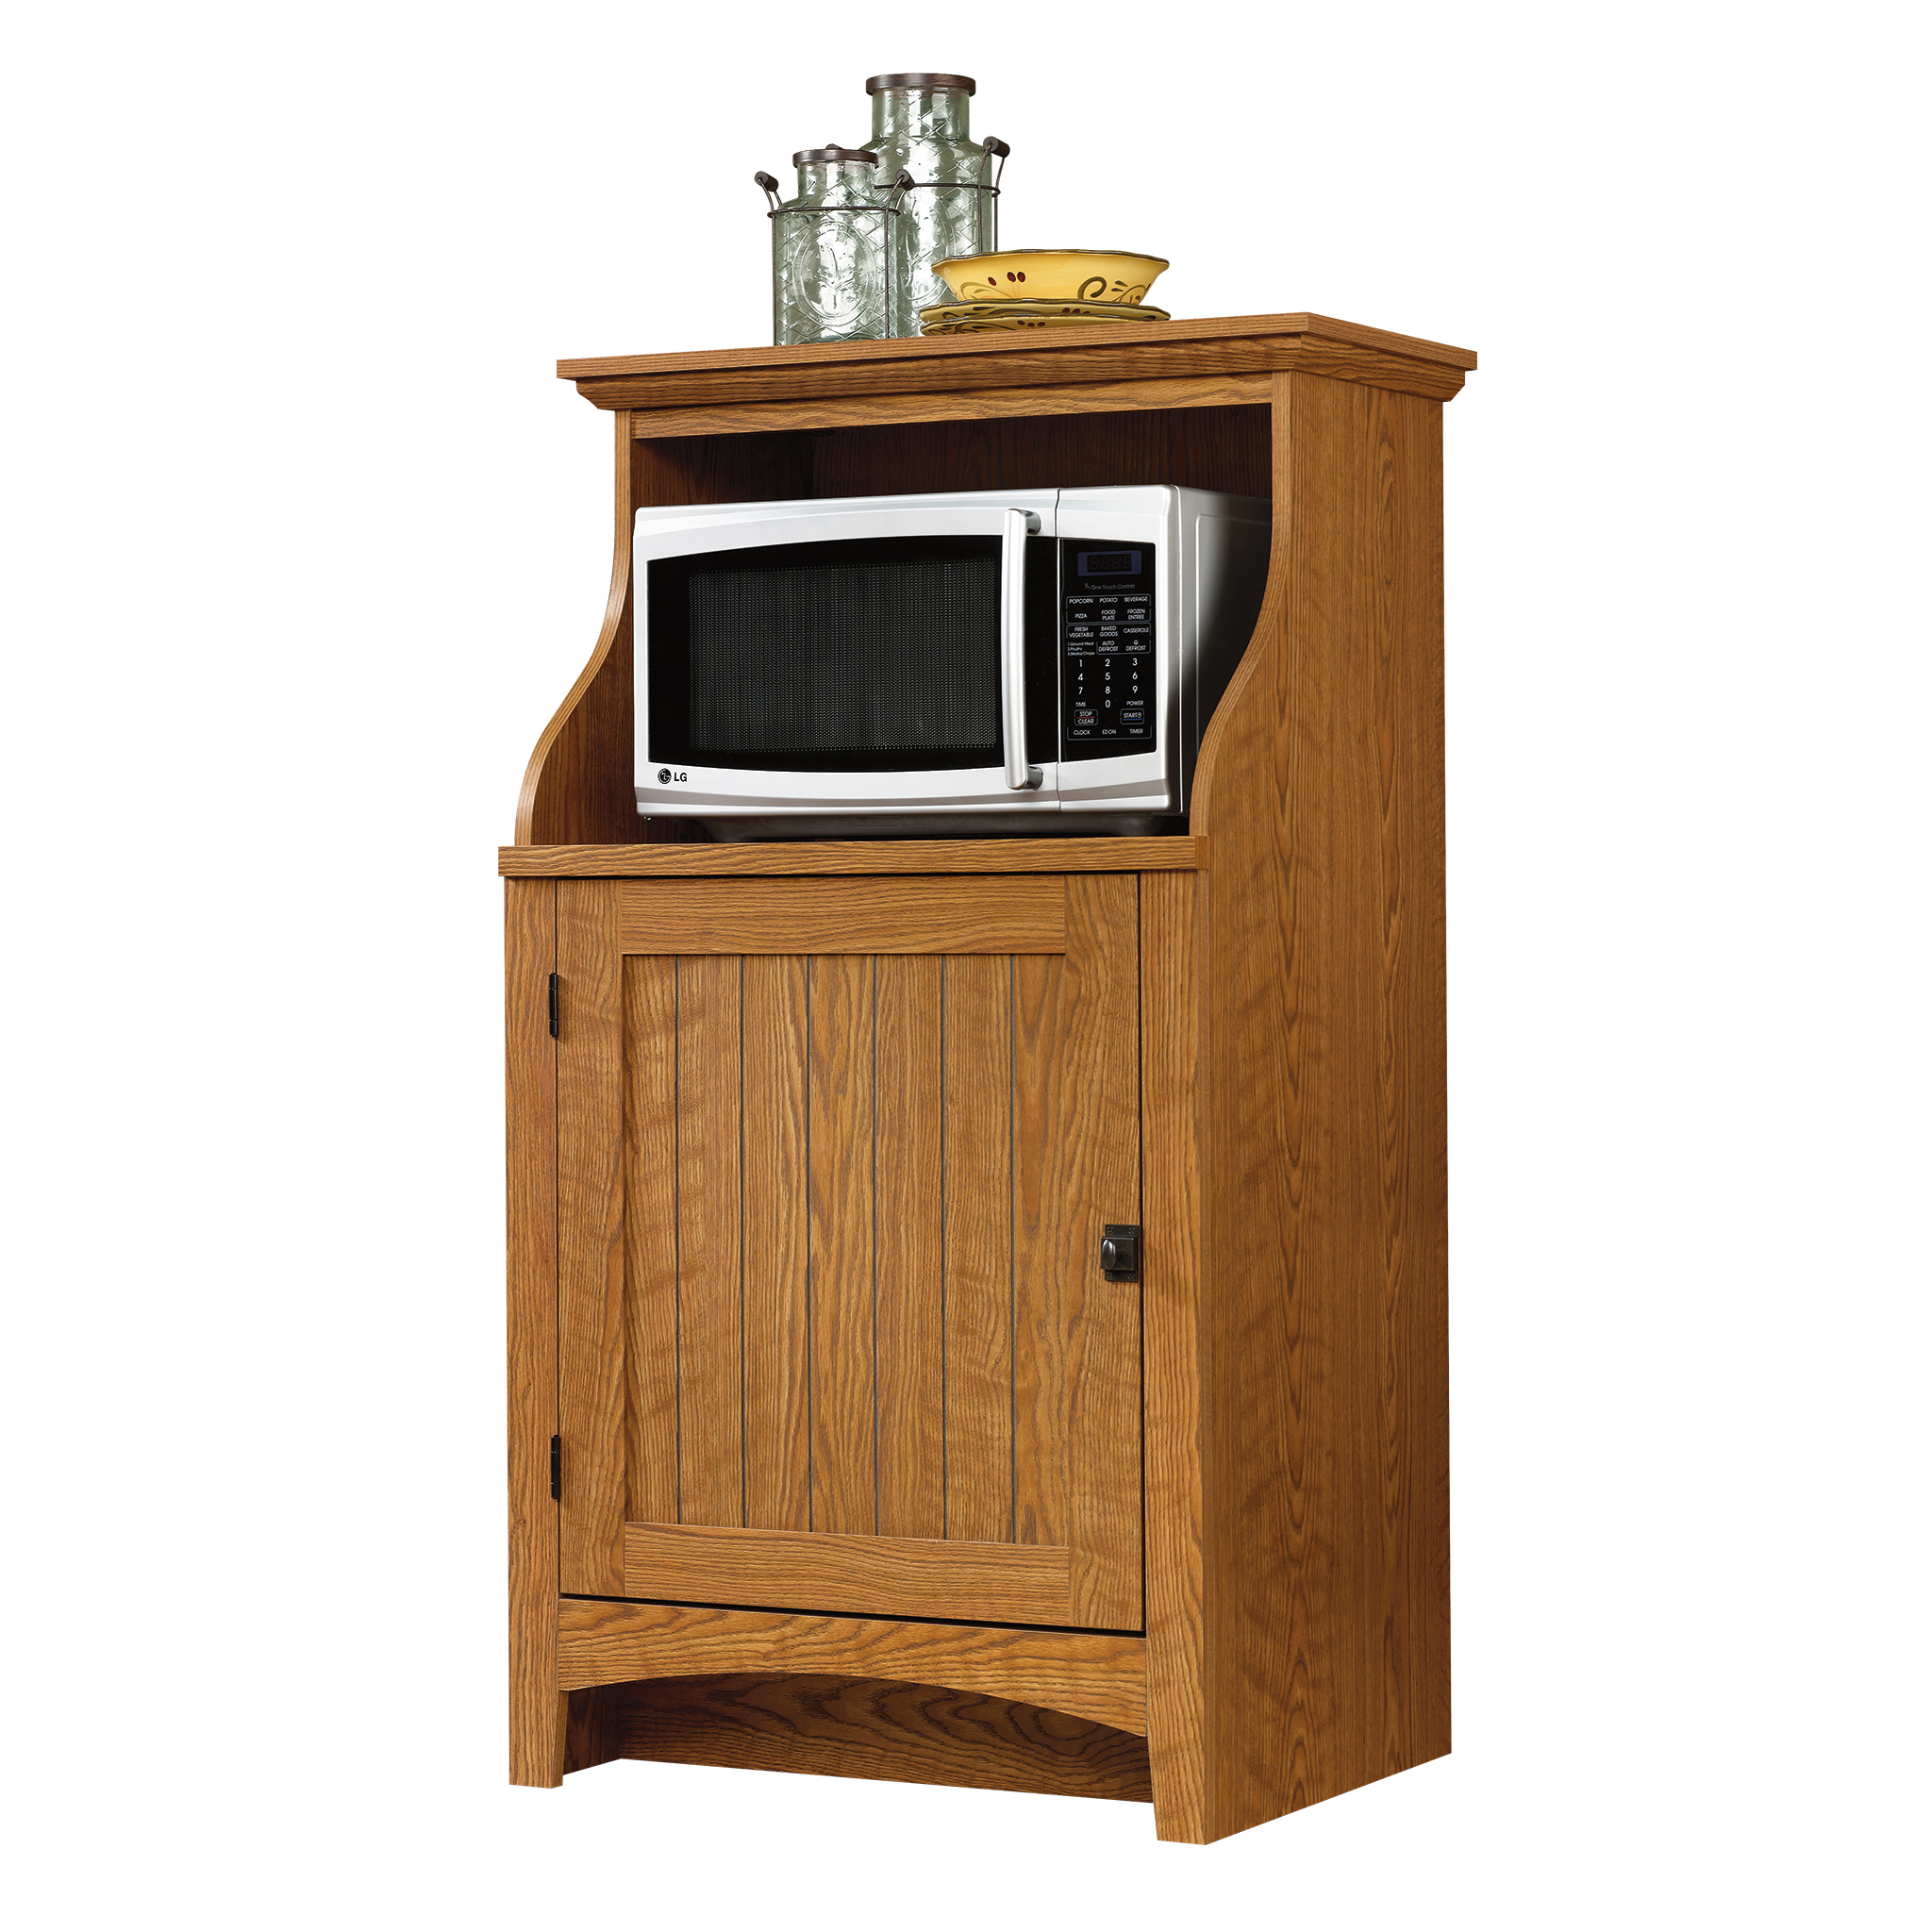 Sauder Microwave Kitchen Cart, Carolina Oak Finish